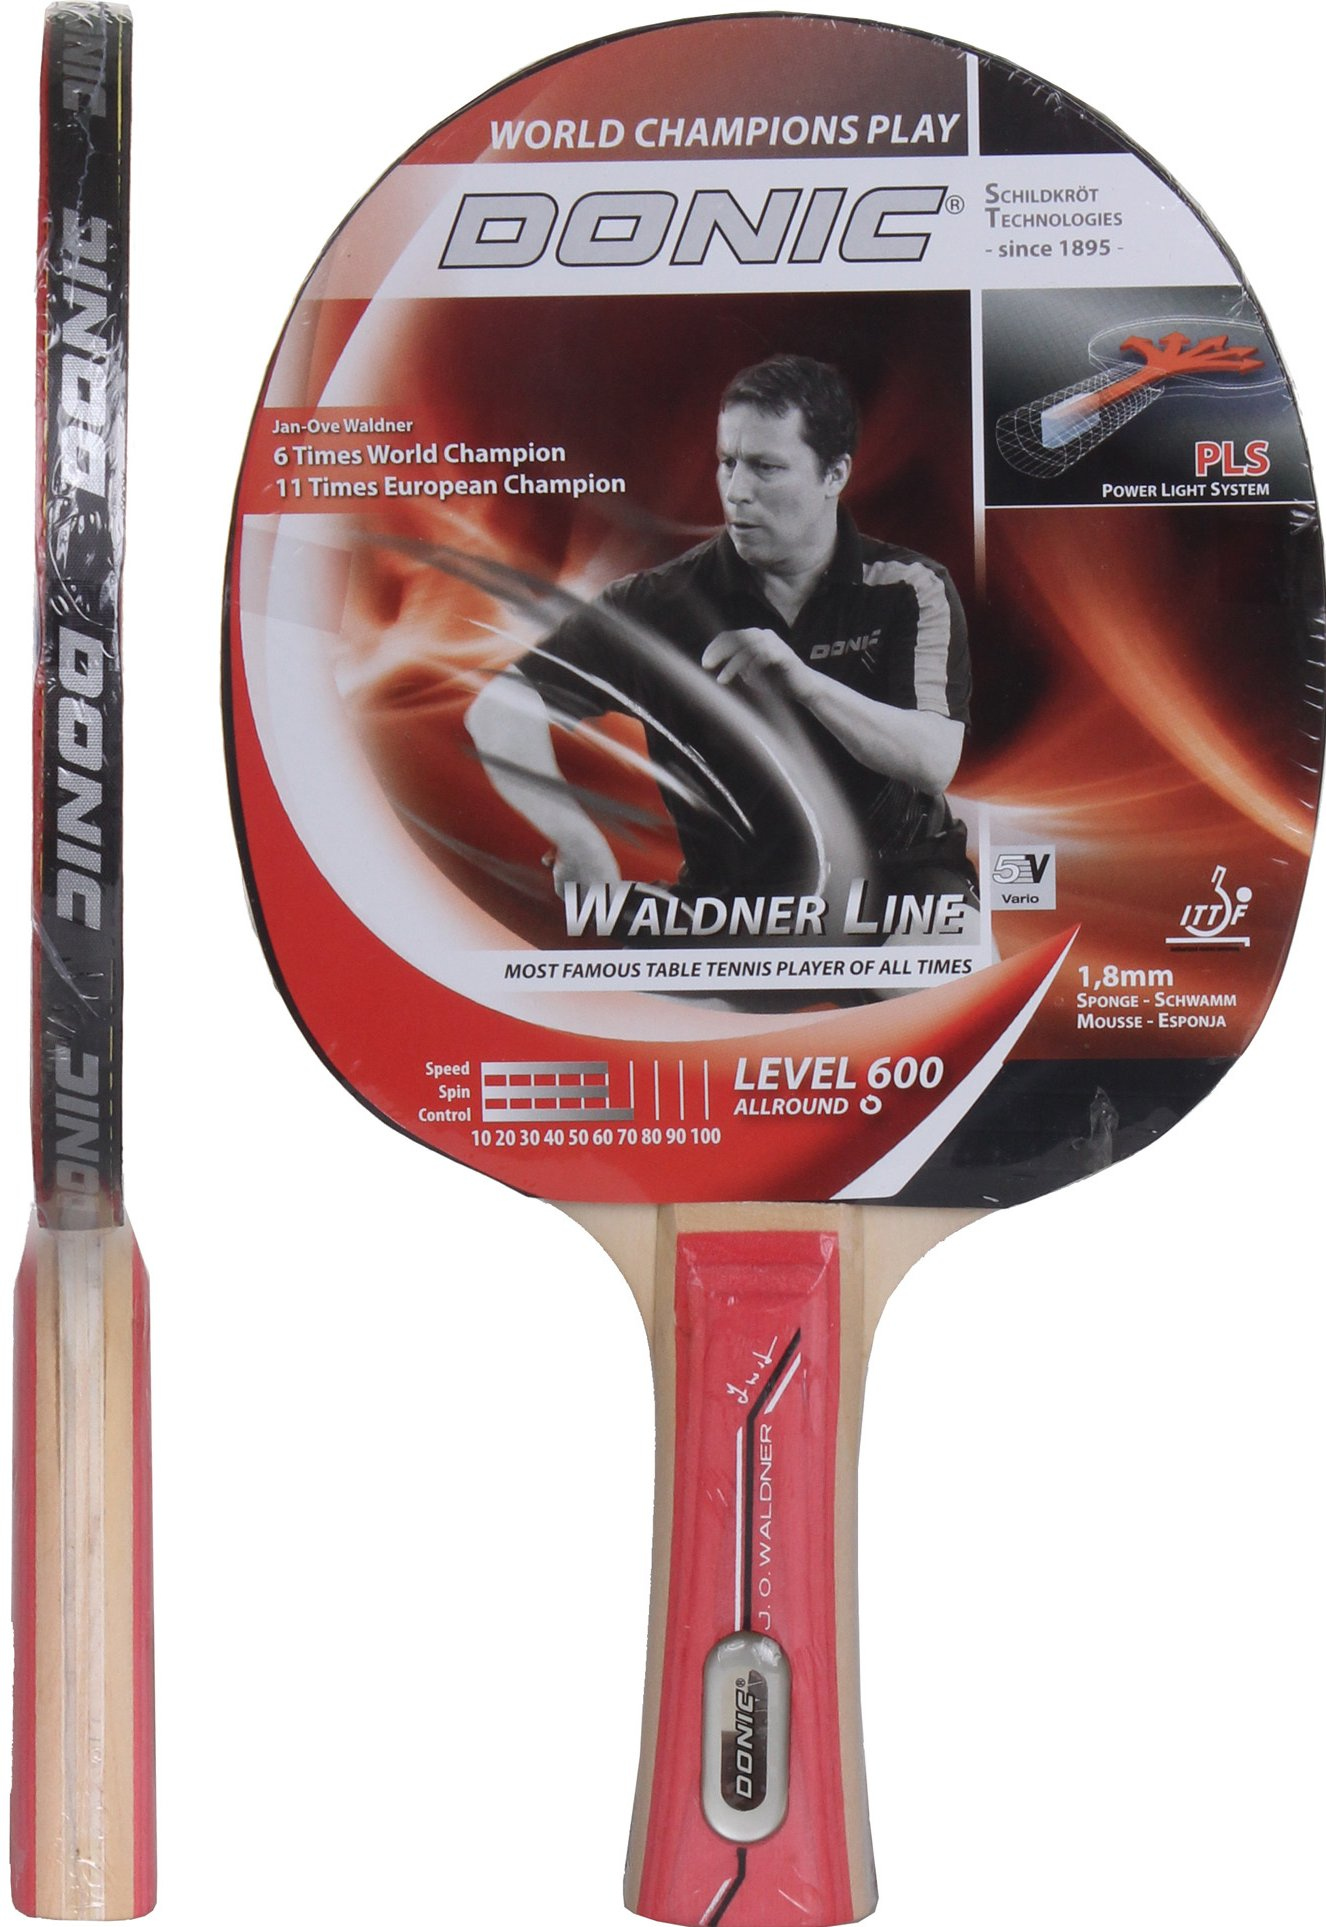 Want To Buy Donic Jo Waldner Line 600 Table Tennis Bat